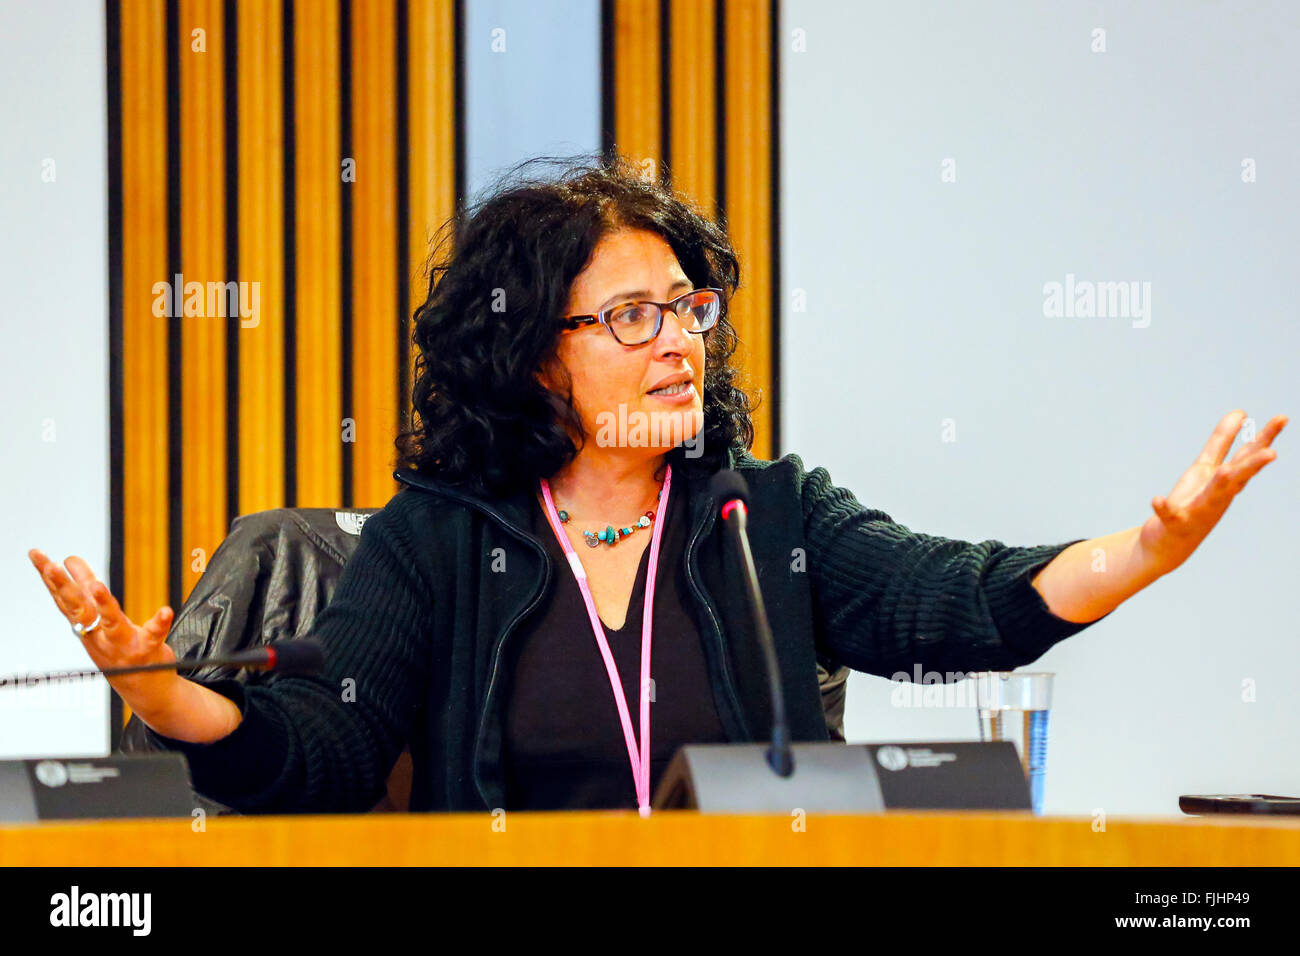 Edinburgh, UK. 02nd Mar, 2016. Sharon Dolev, Founder and Director of Israeli Disarmament Movement was welcomed to - Stock Image